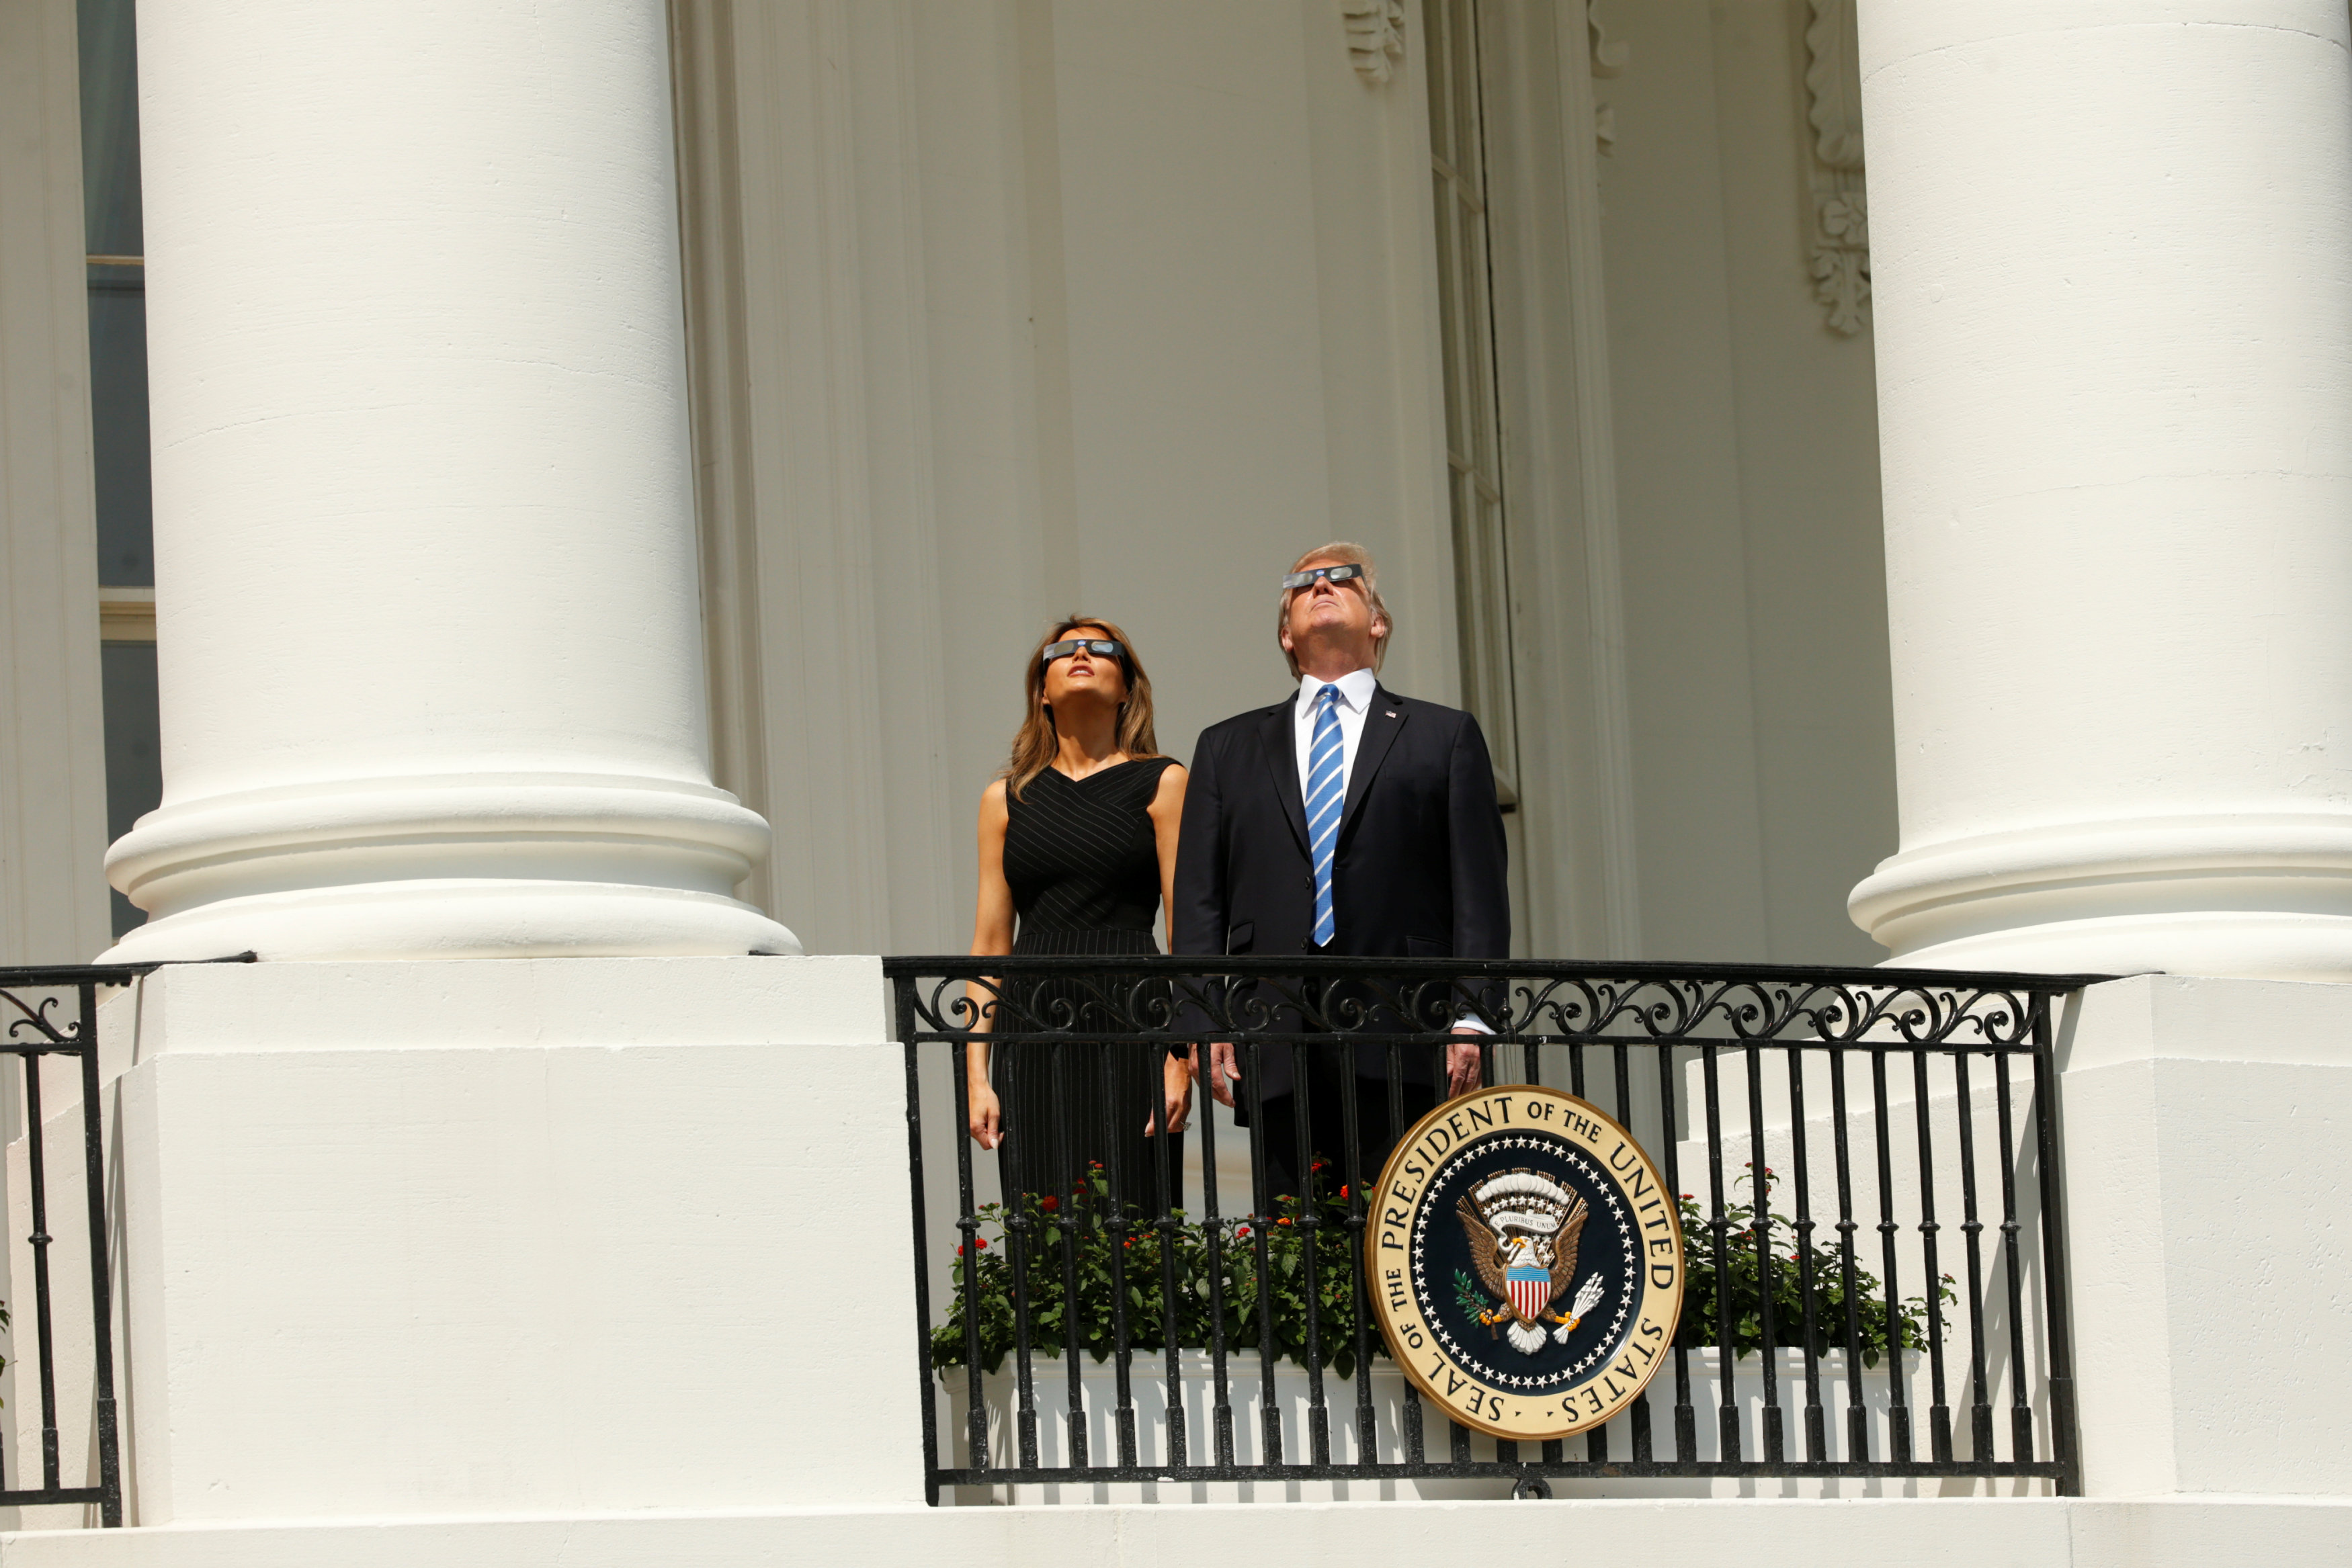 U.S. President Donald Trump watches the solar eclipse with first Lady Melania Trump from the Truman Balcony at the White House in Washington, U.S., August 21, 2017. REUTERS/Kevin Lamarque